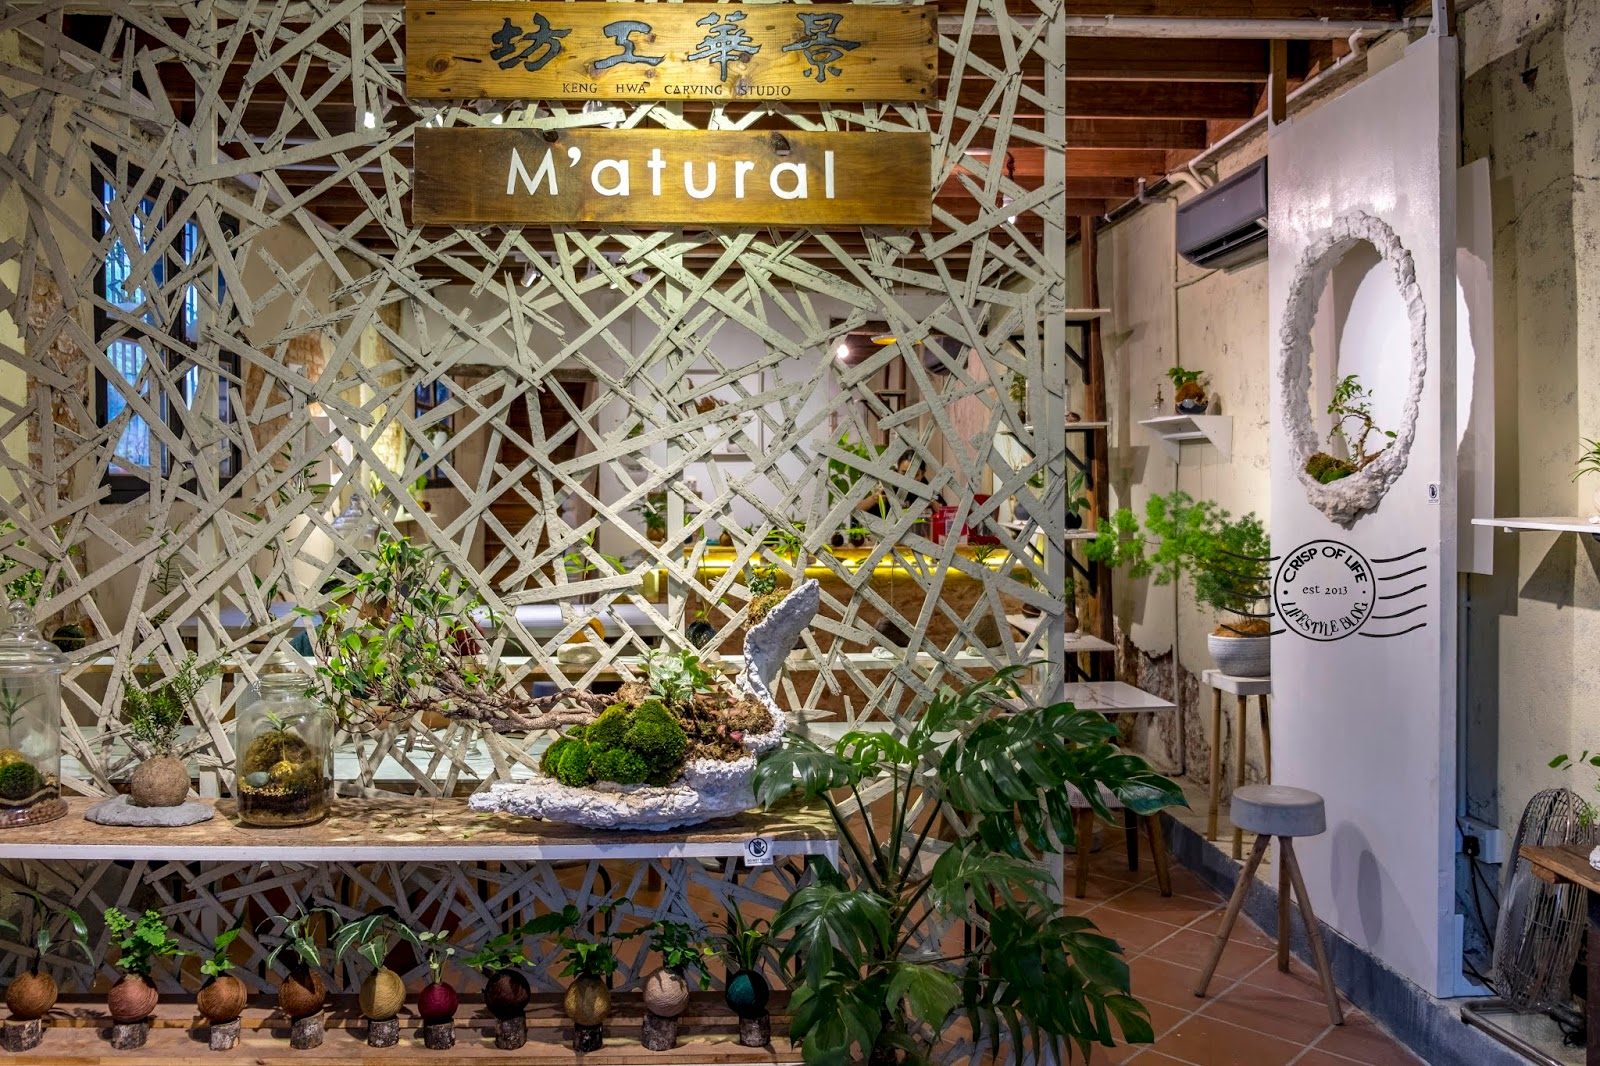 M'atural - A contemporary bonsai studio/cafe @ Lorong Carnavon, Penang